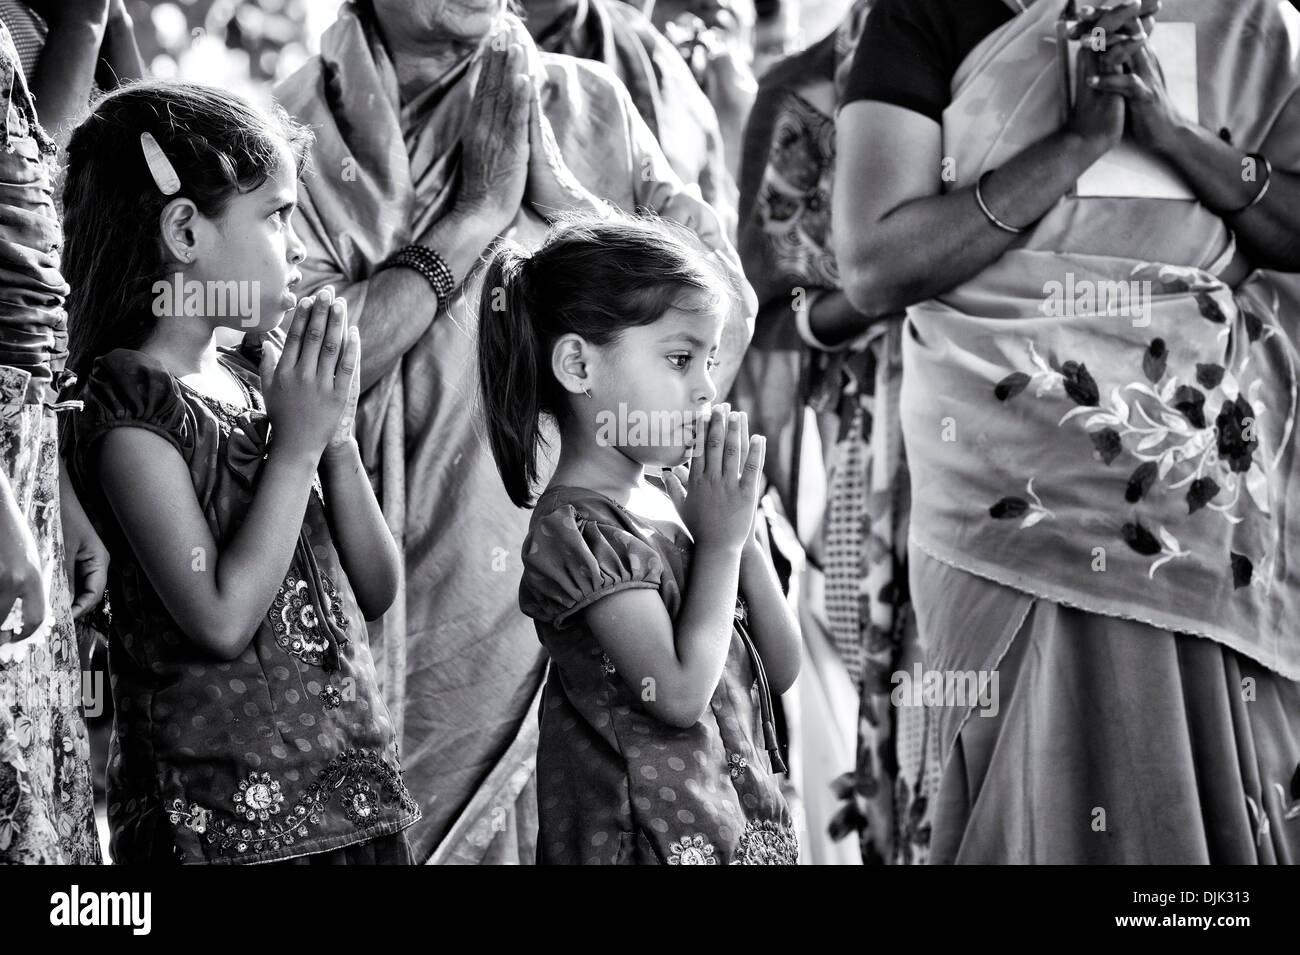 Rural Indian school girls sing devotional songs at Sri Sathya Sai Baba mobile outreach hospital service. Andhra Pradesh, India. - Stock Image